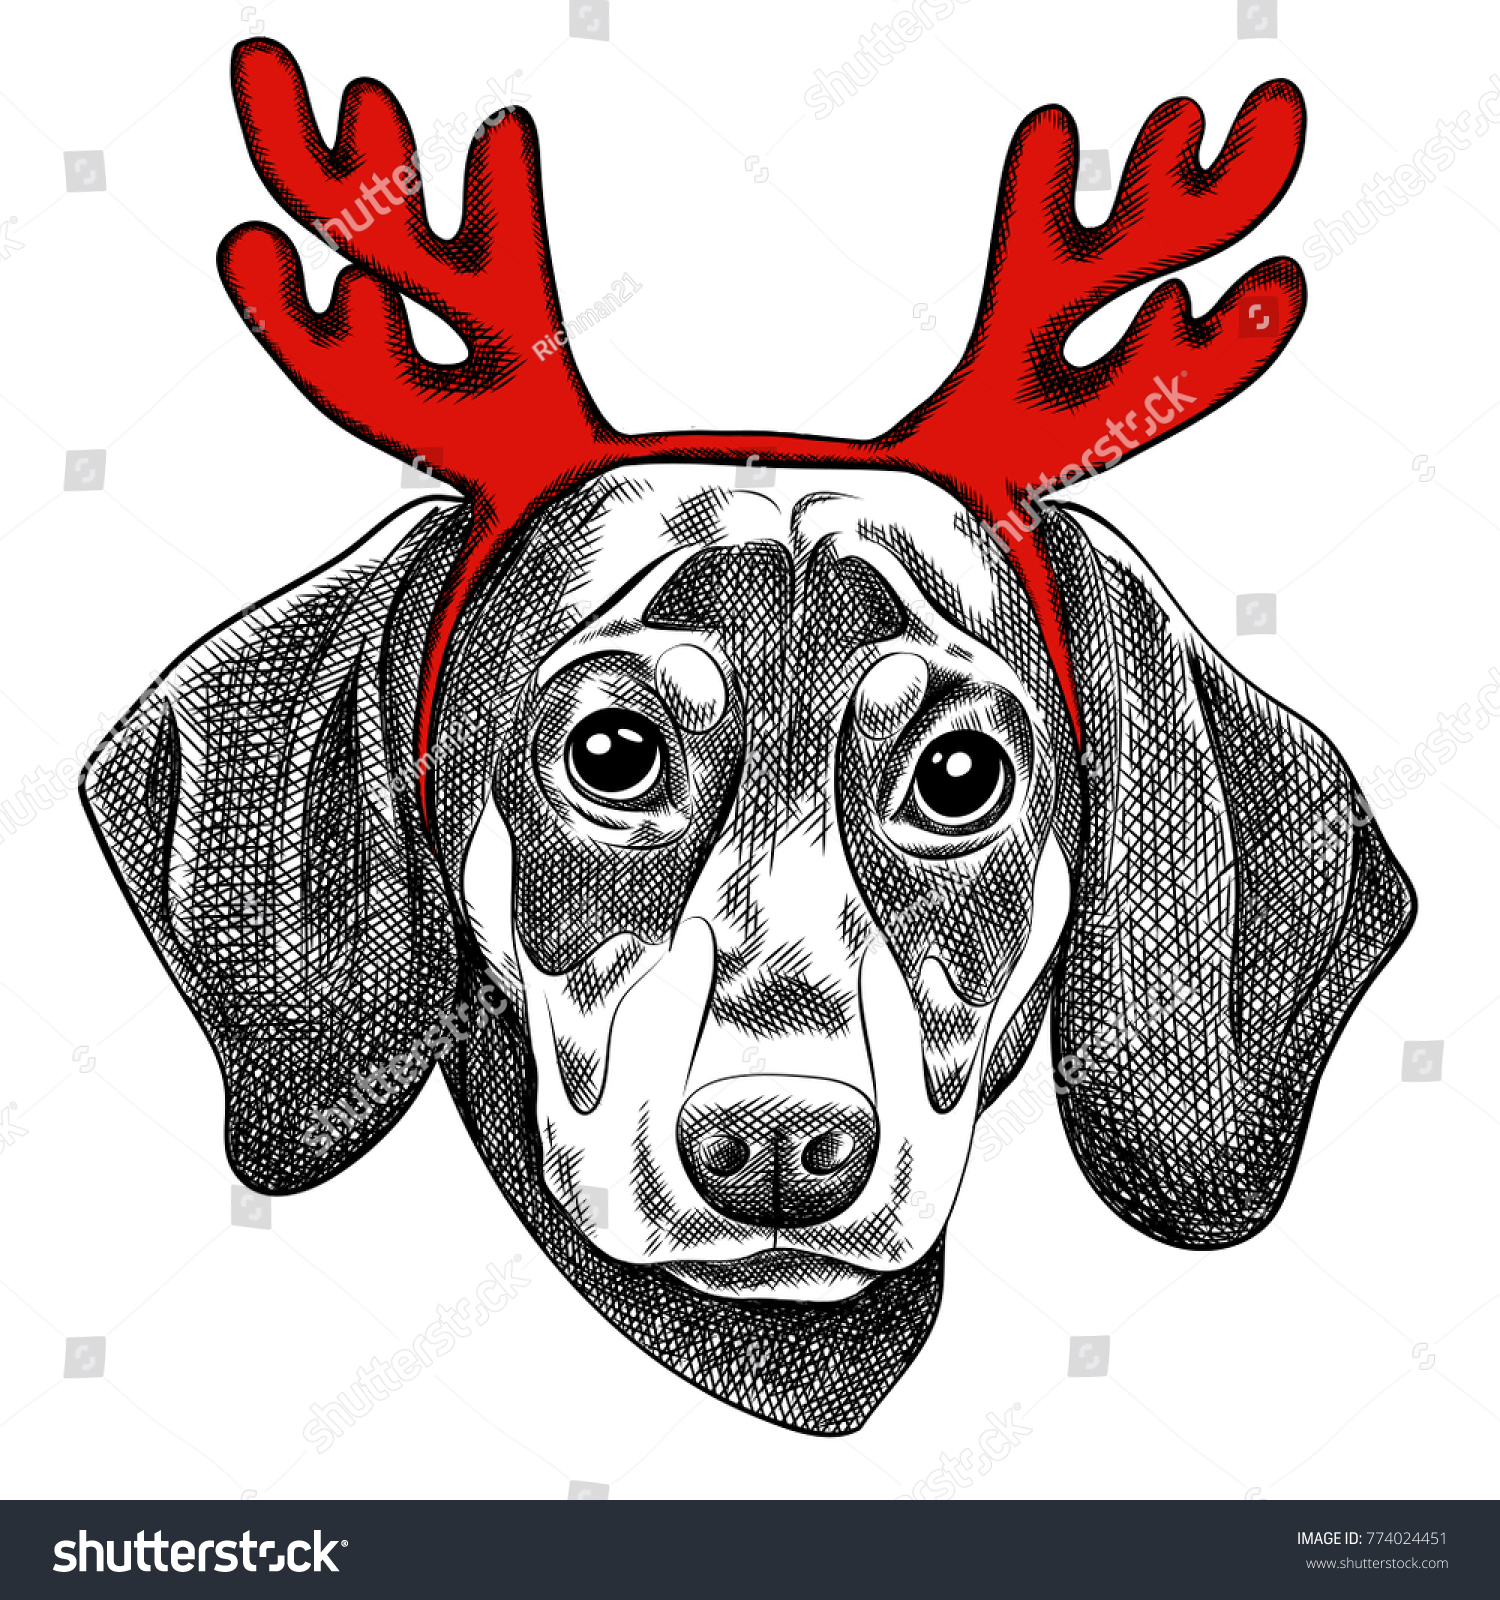 065d1e83659 Vector illustration of a Dachshund dog for a Christmas card. Dachshund with  red horns of reindeer. Merry Christmas in the year of the dog.